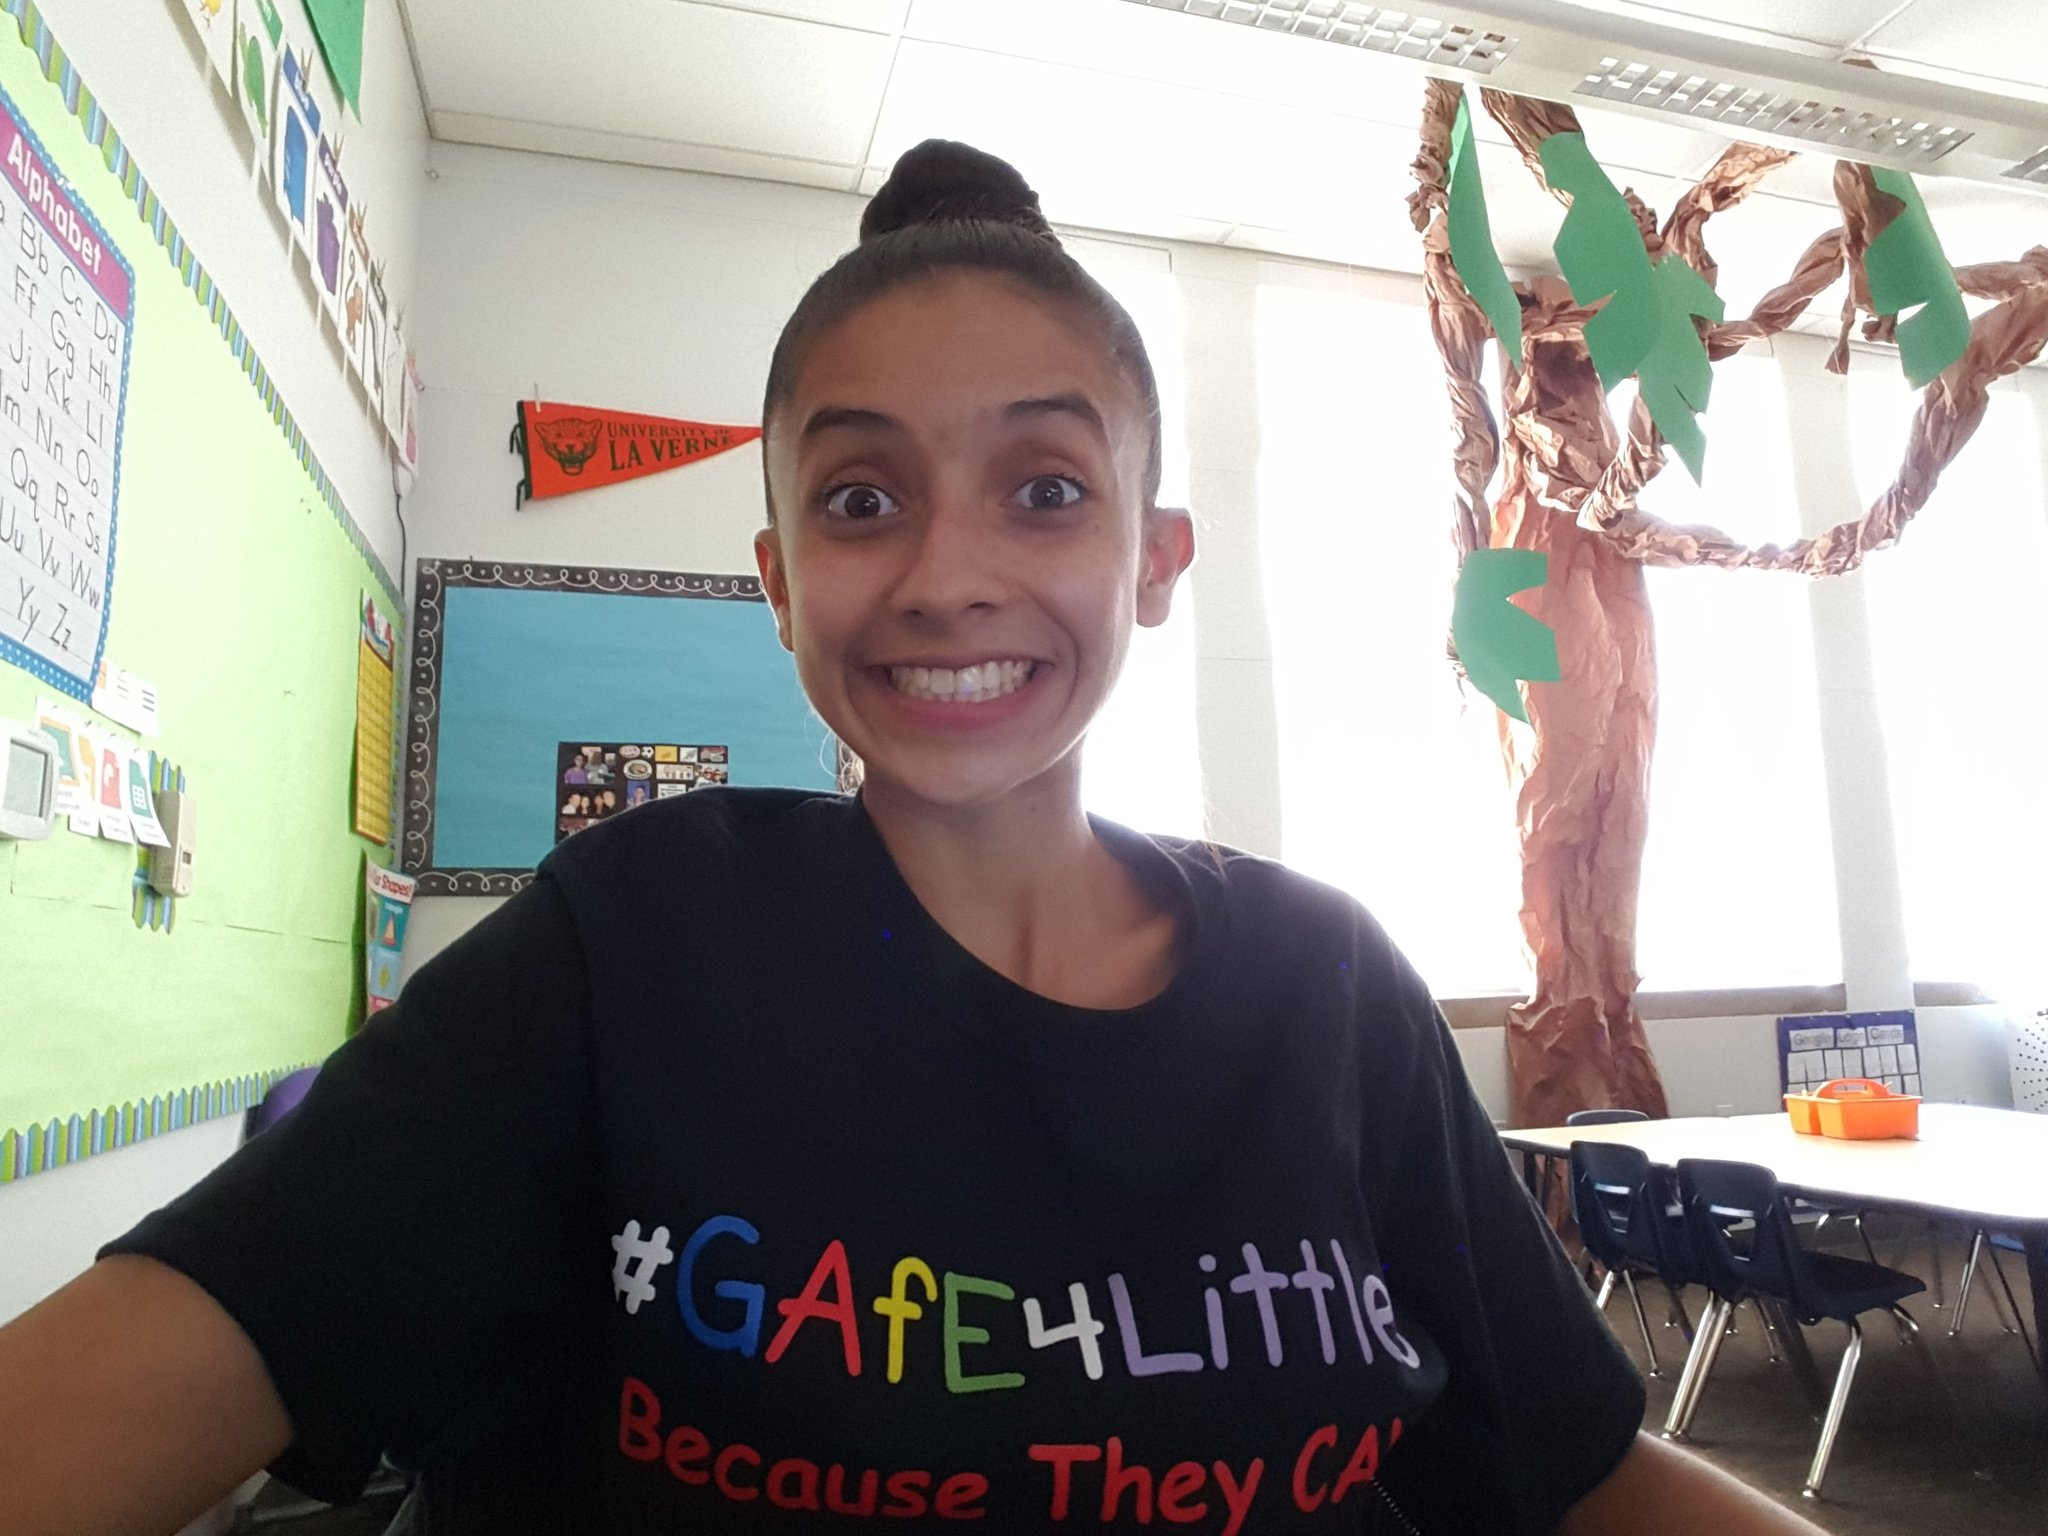 Welcome to the #gafe4littles chat! Kinder T from @ArcadiaUnified in So Cal moderating from my classroom! https://t.co/QC9F895cmf